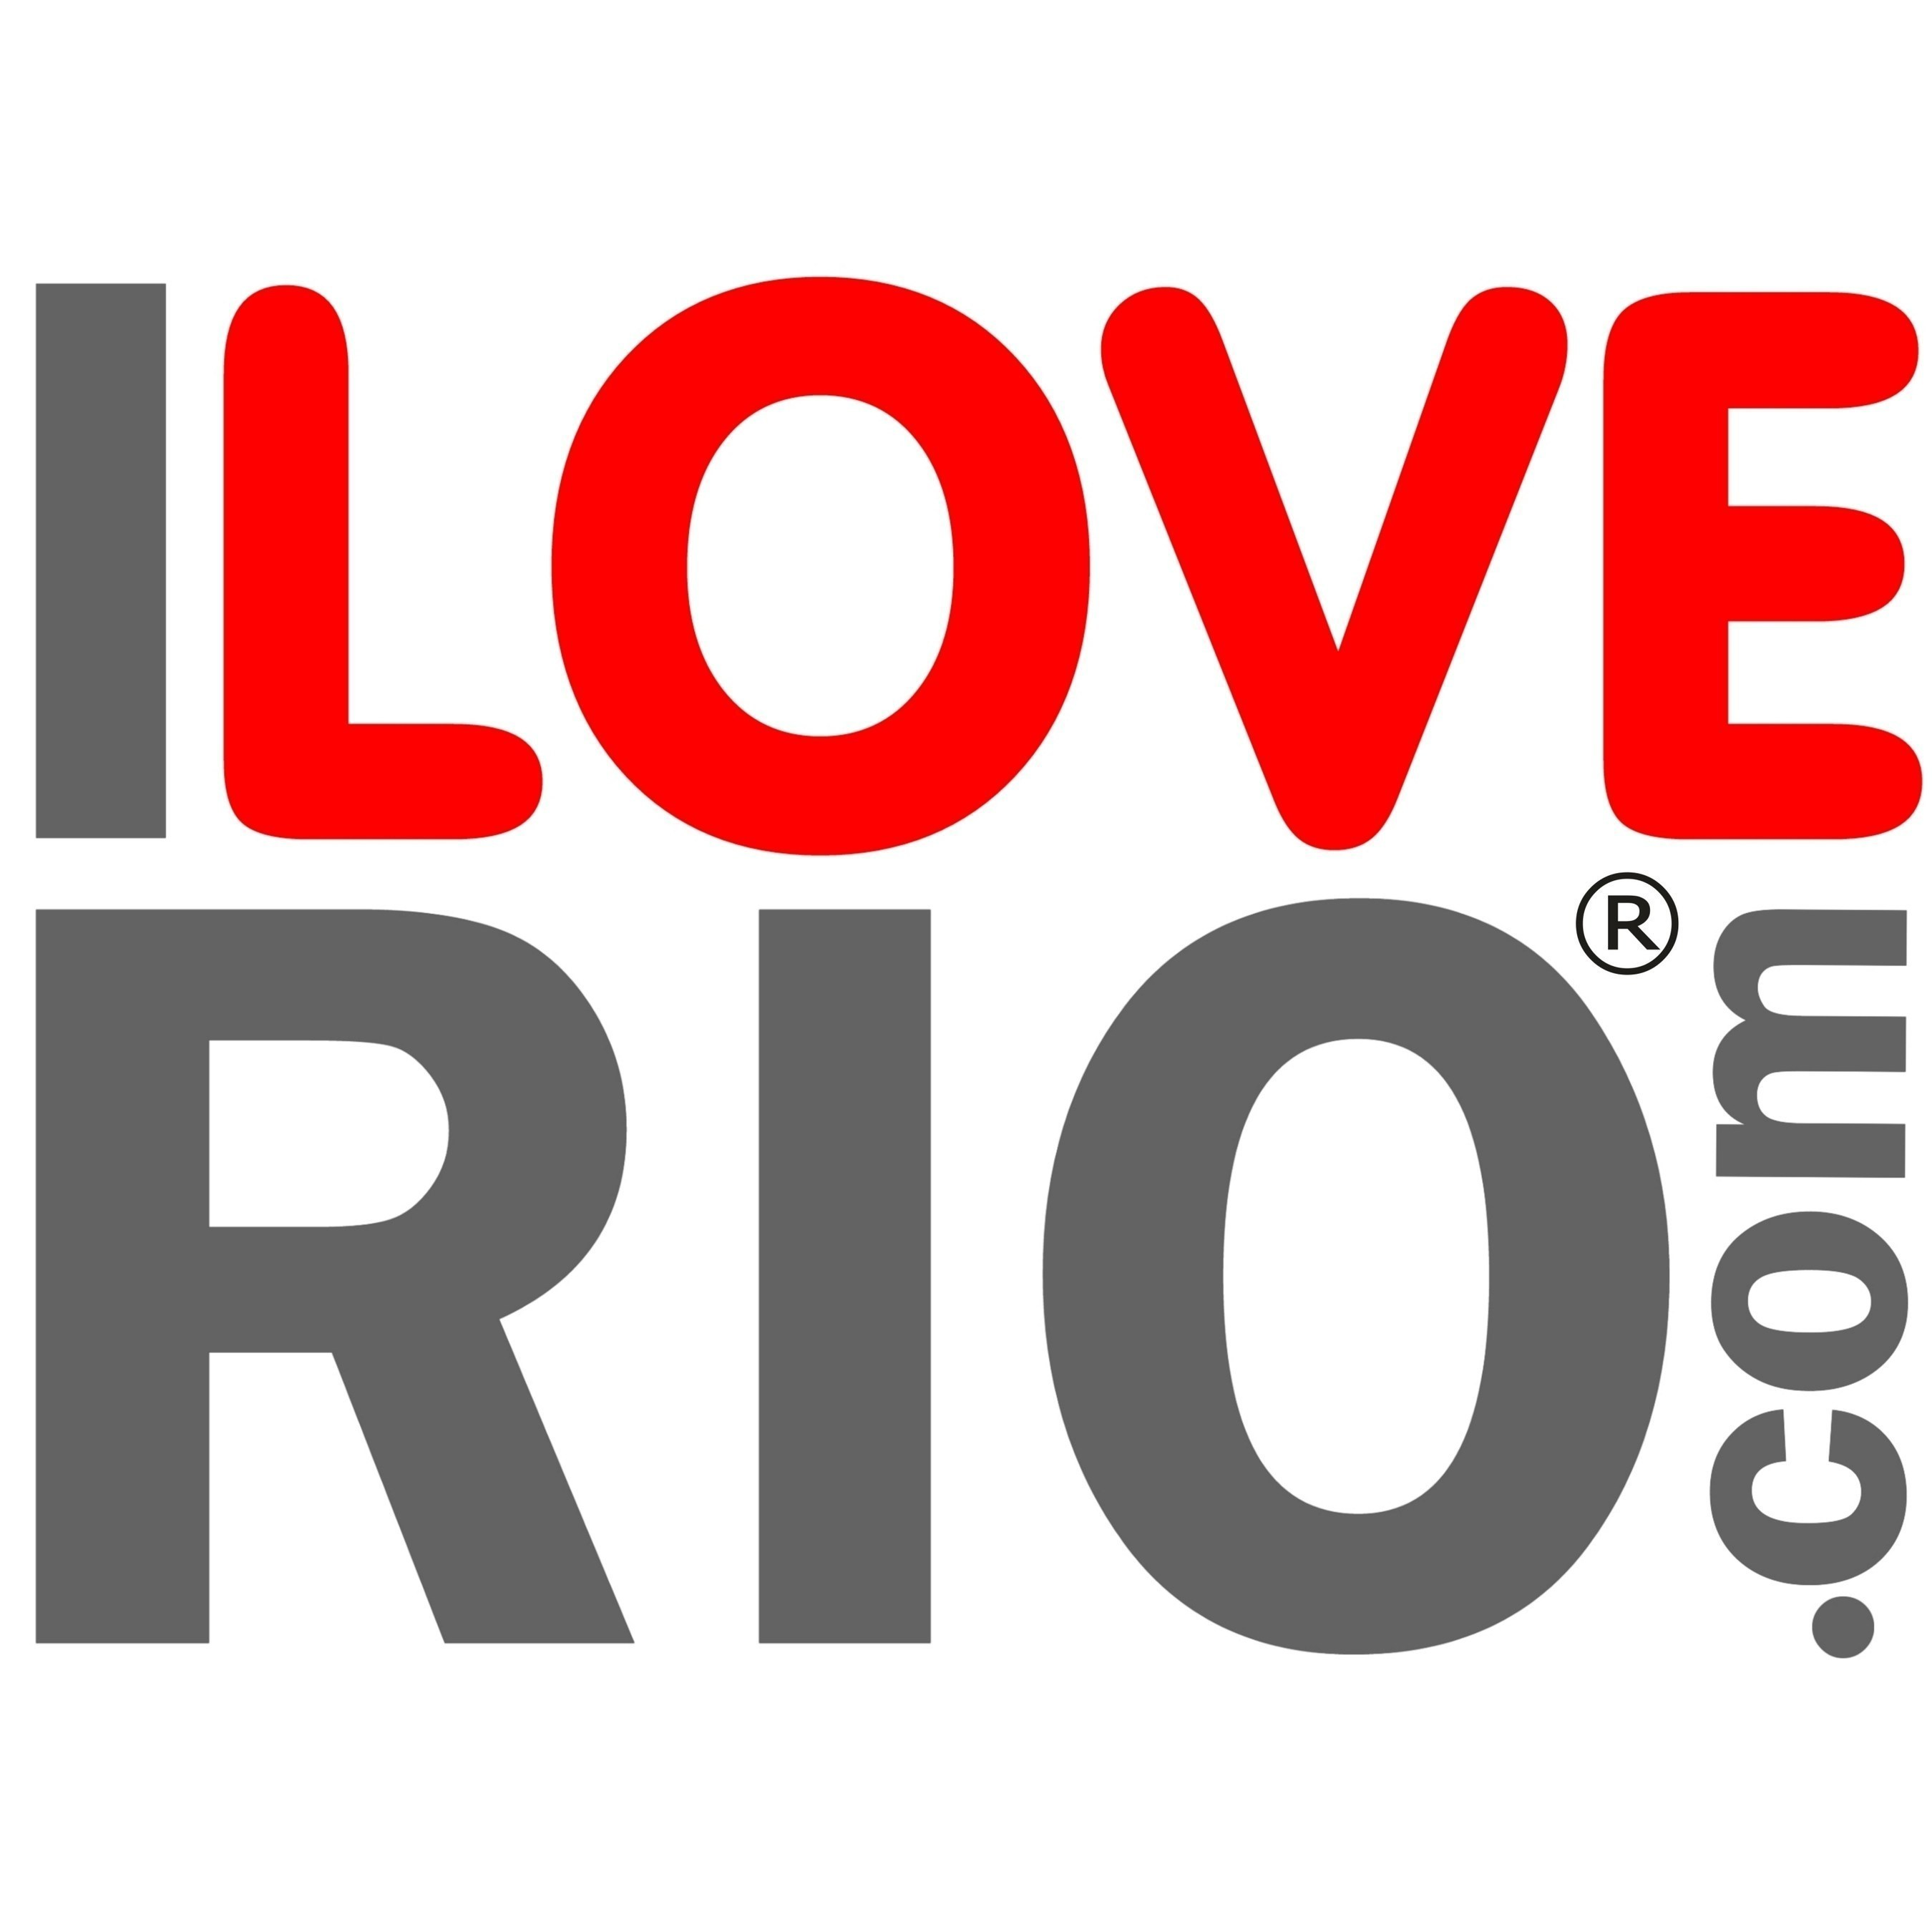 I LOVE RIO is a presentation of Rio de Janeiro with a social, cultural and historical interpretation of all the aspects that make the city the beautiful and unique gem that it is today. Designed for both quality tourism and in-depth research, the Portal is a virtual stroll along the many corners of Rio that, for a lack of time or opportunity, cannot be directly experienced by the majority of visitors, allowing them to discover hidden dimensions of the city. www.iloverio.com